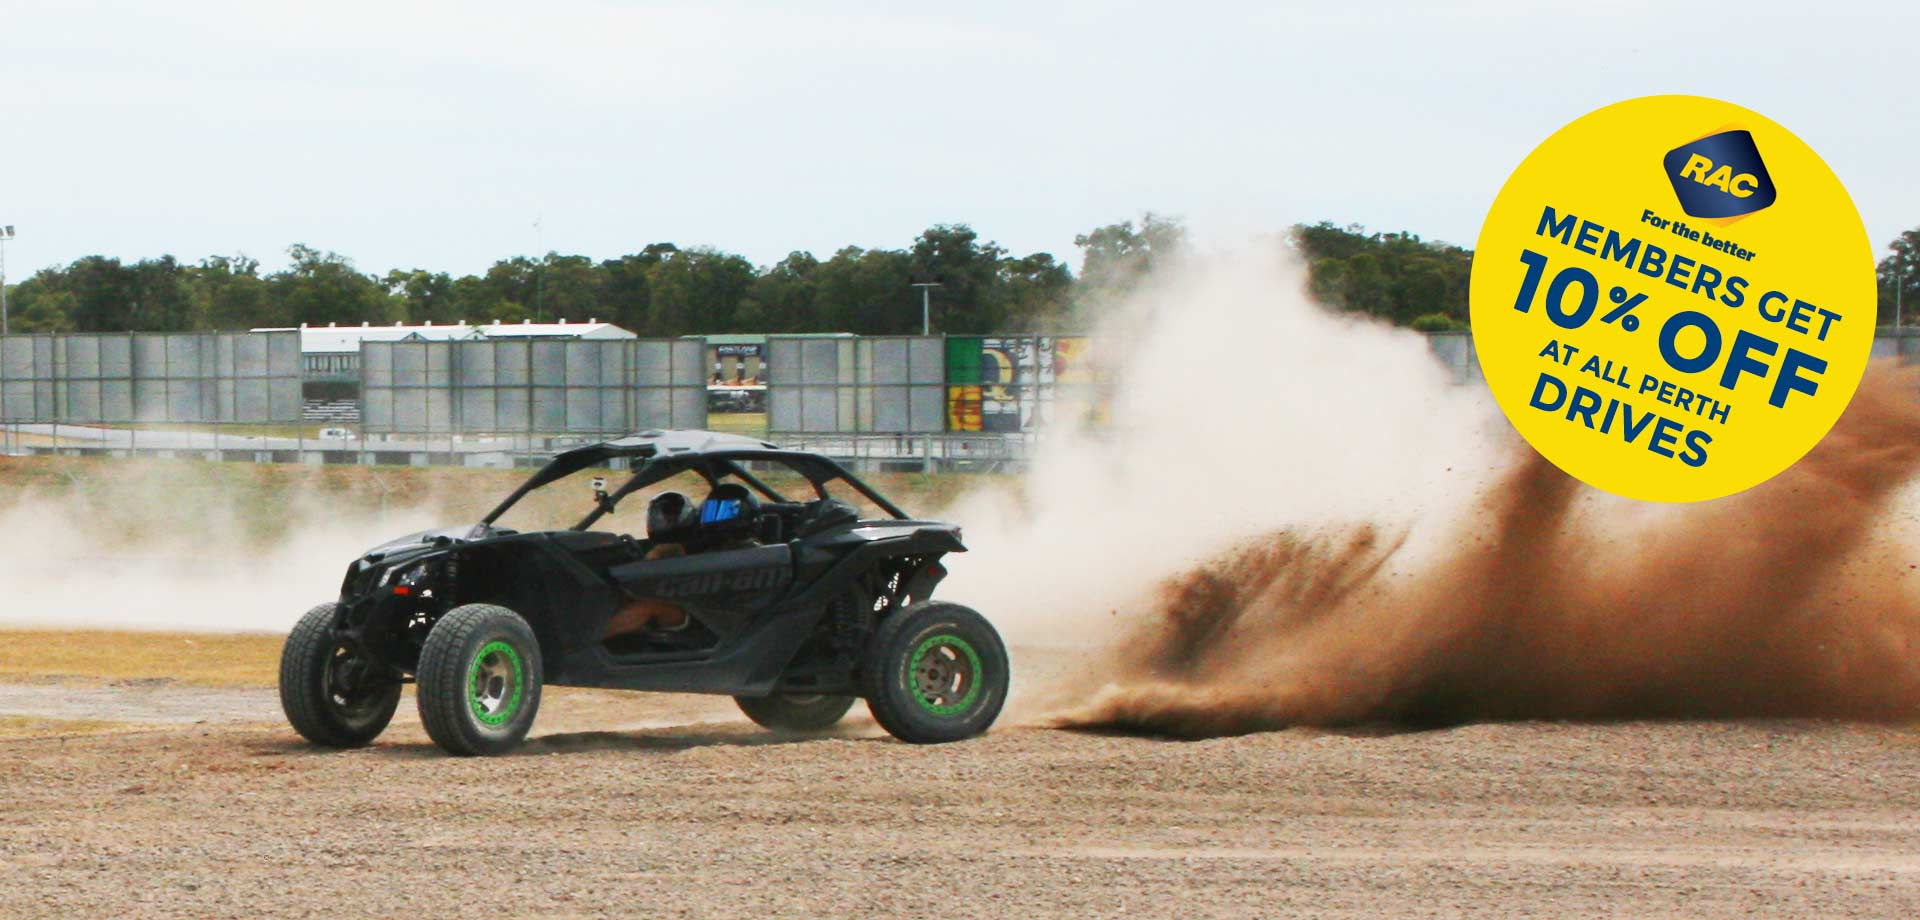 V8 Trophy Truck Drives, UTV, WRX Turbo Rally Drives - Perth WA